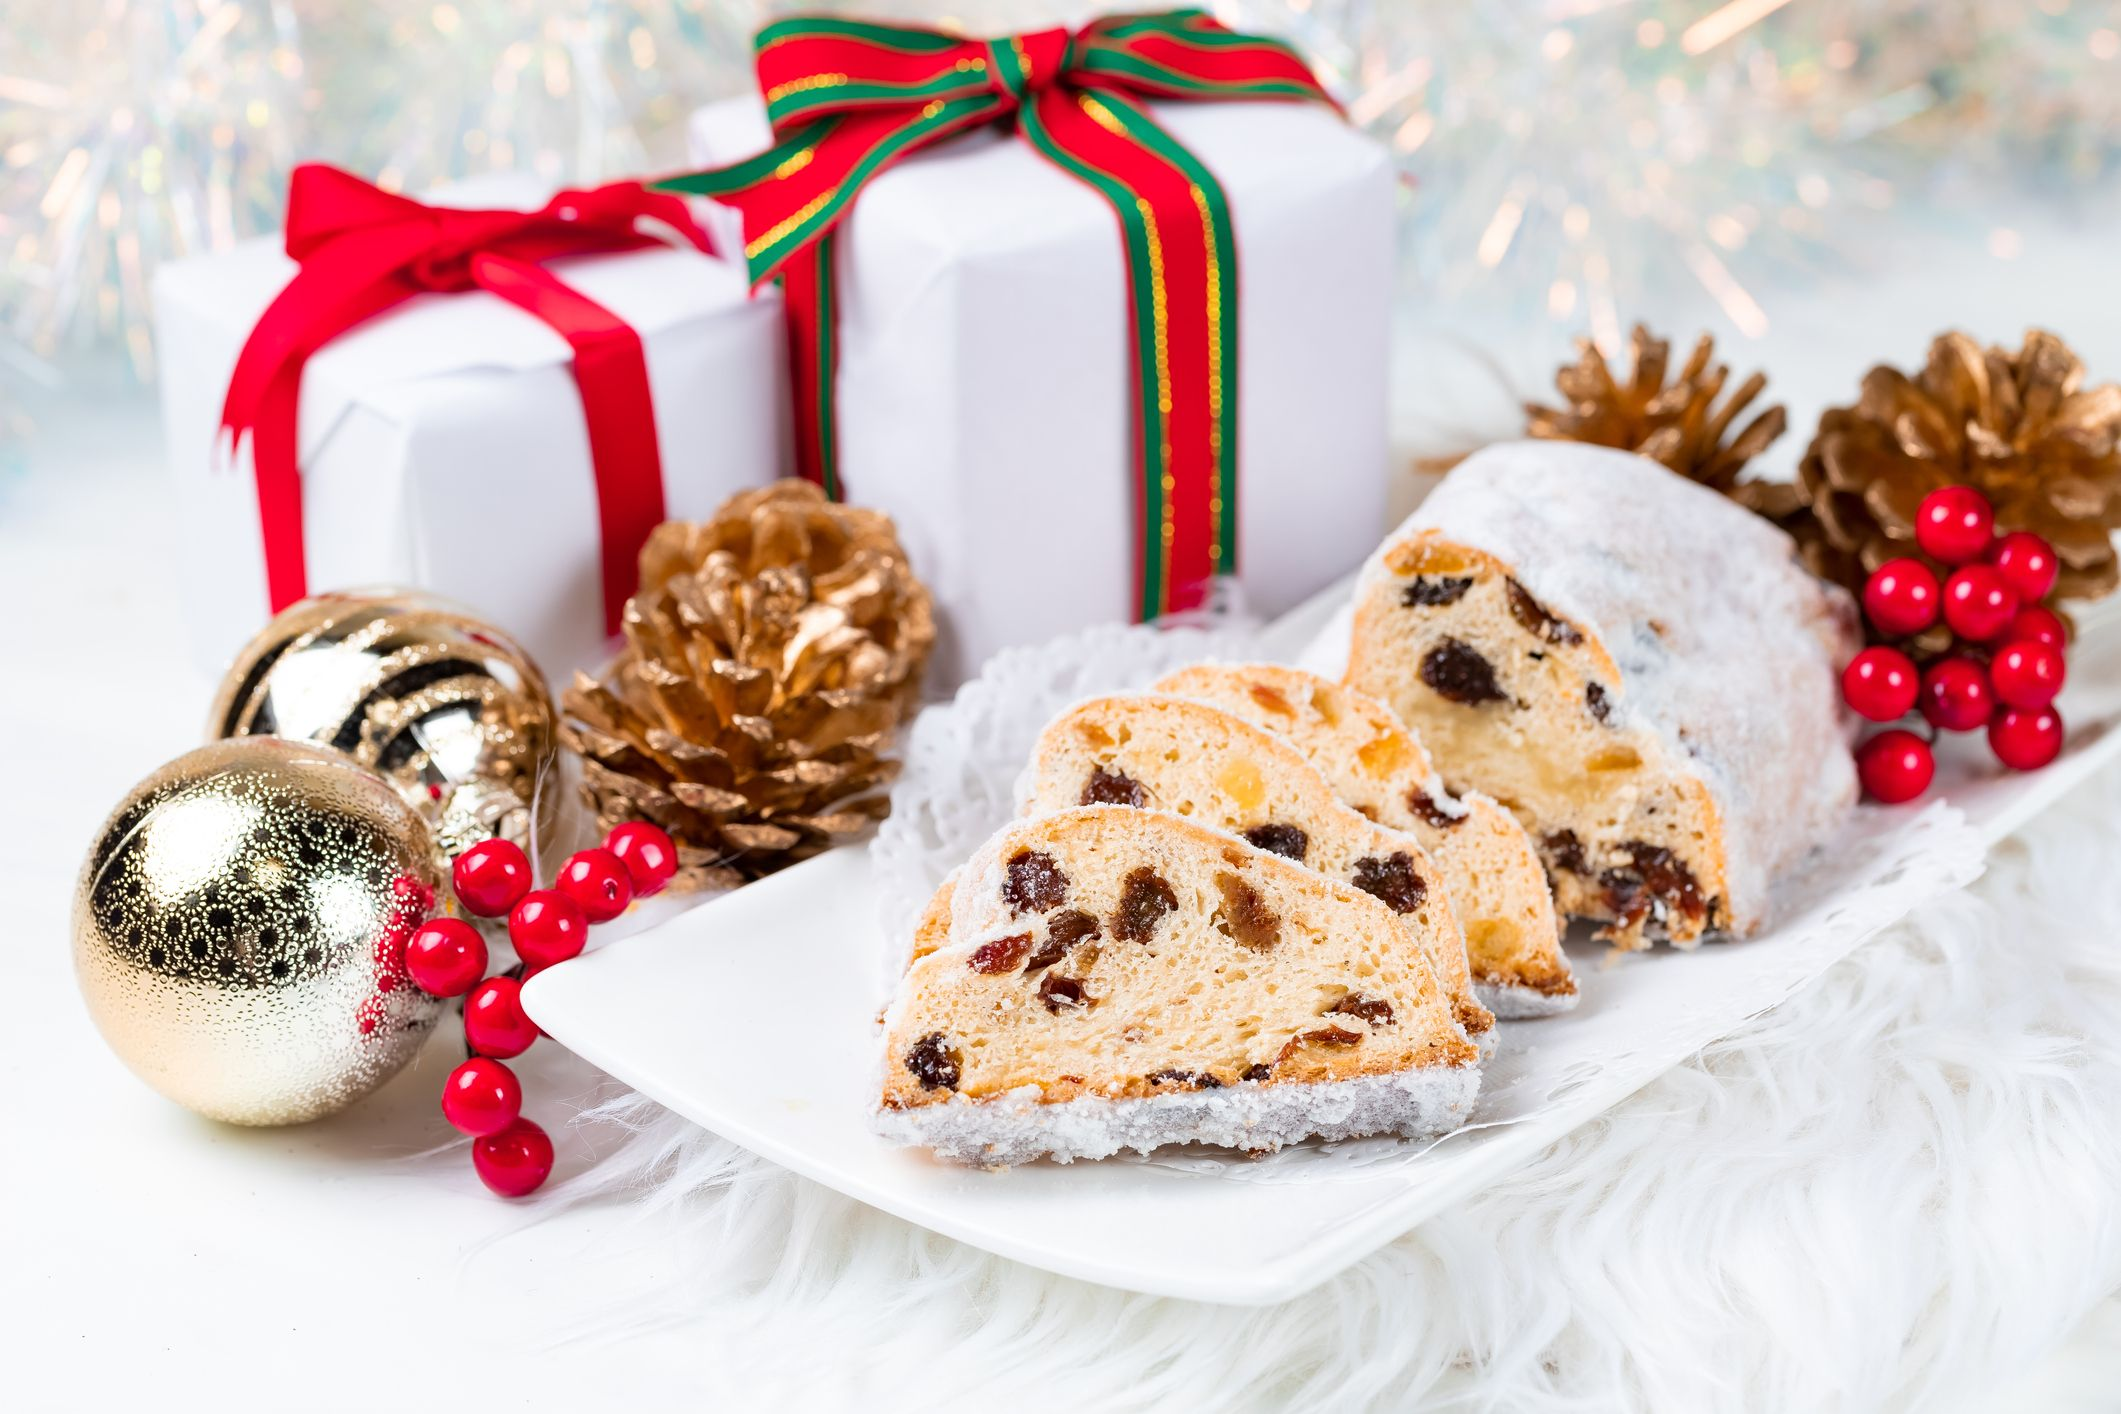 10 Traditional Christmas and Holiday Bread Recipes From Around The World